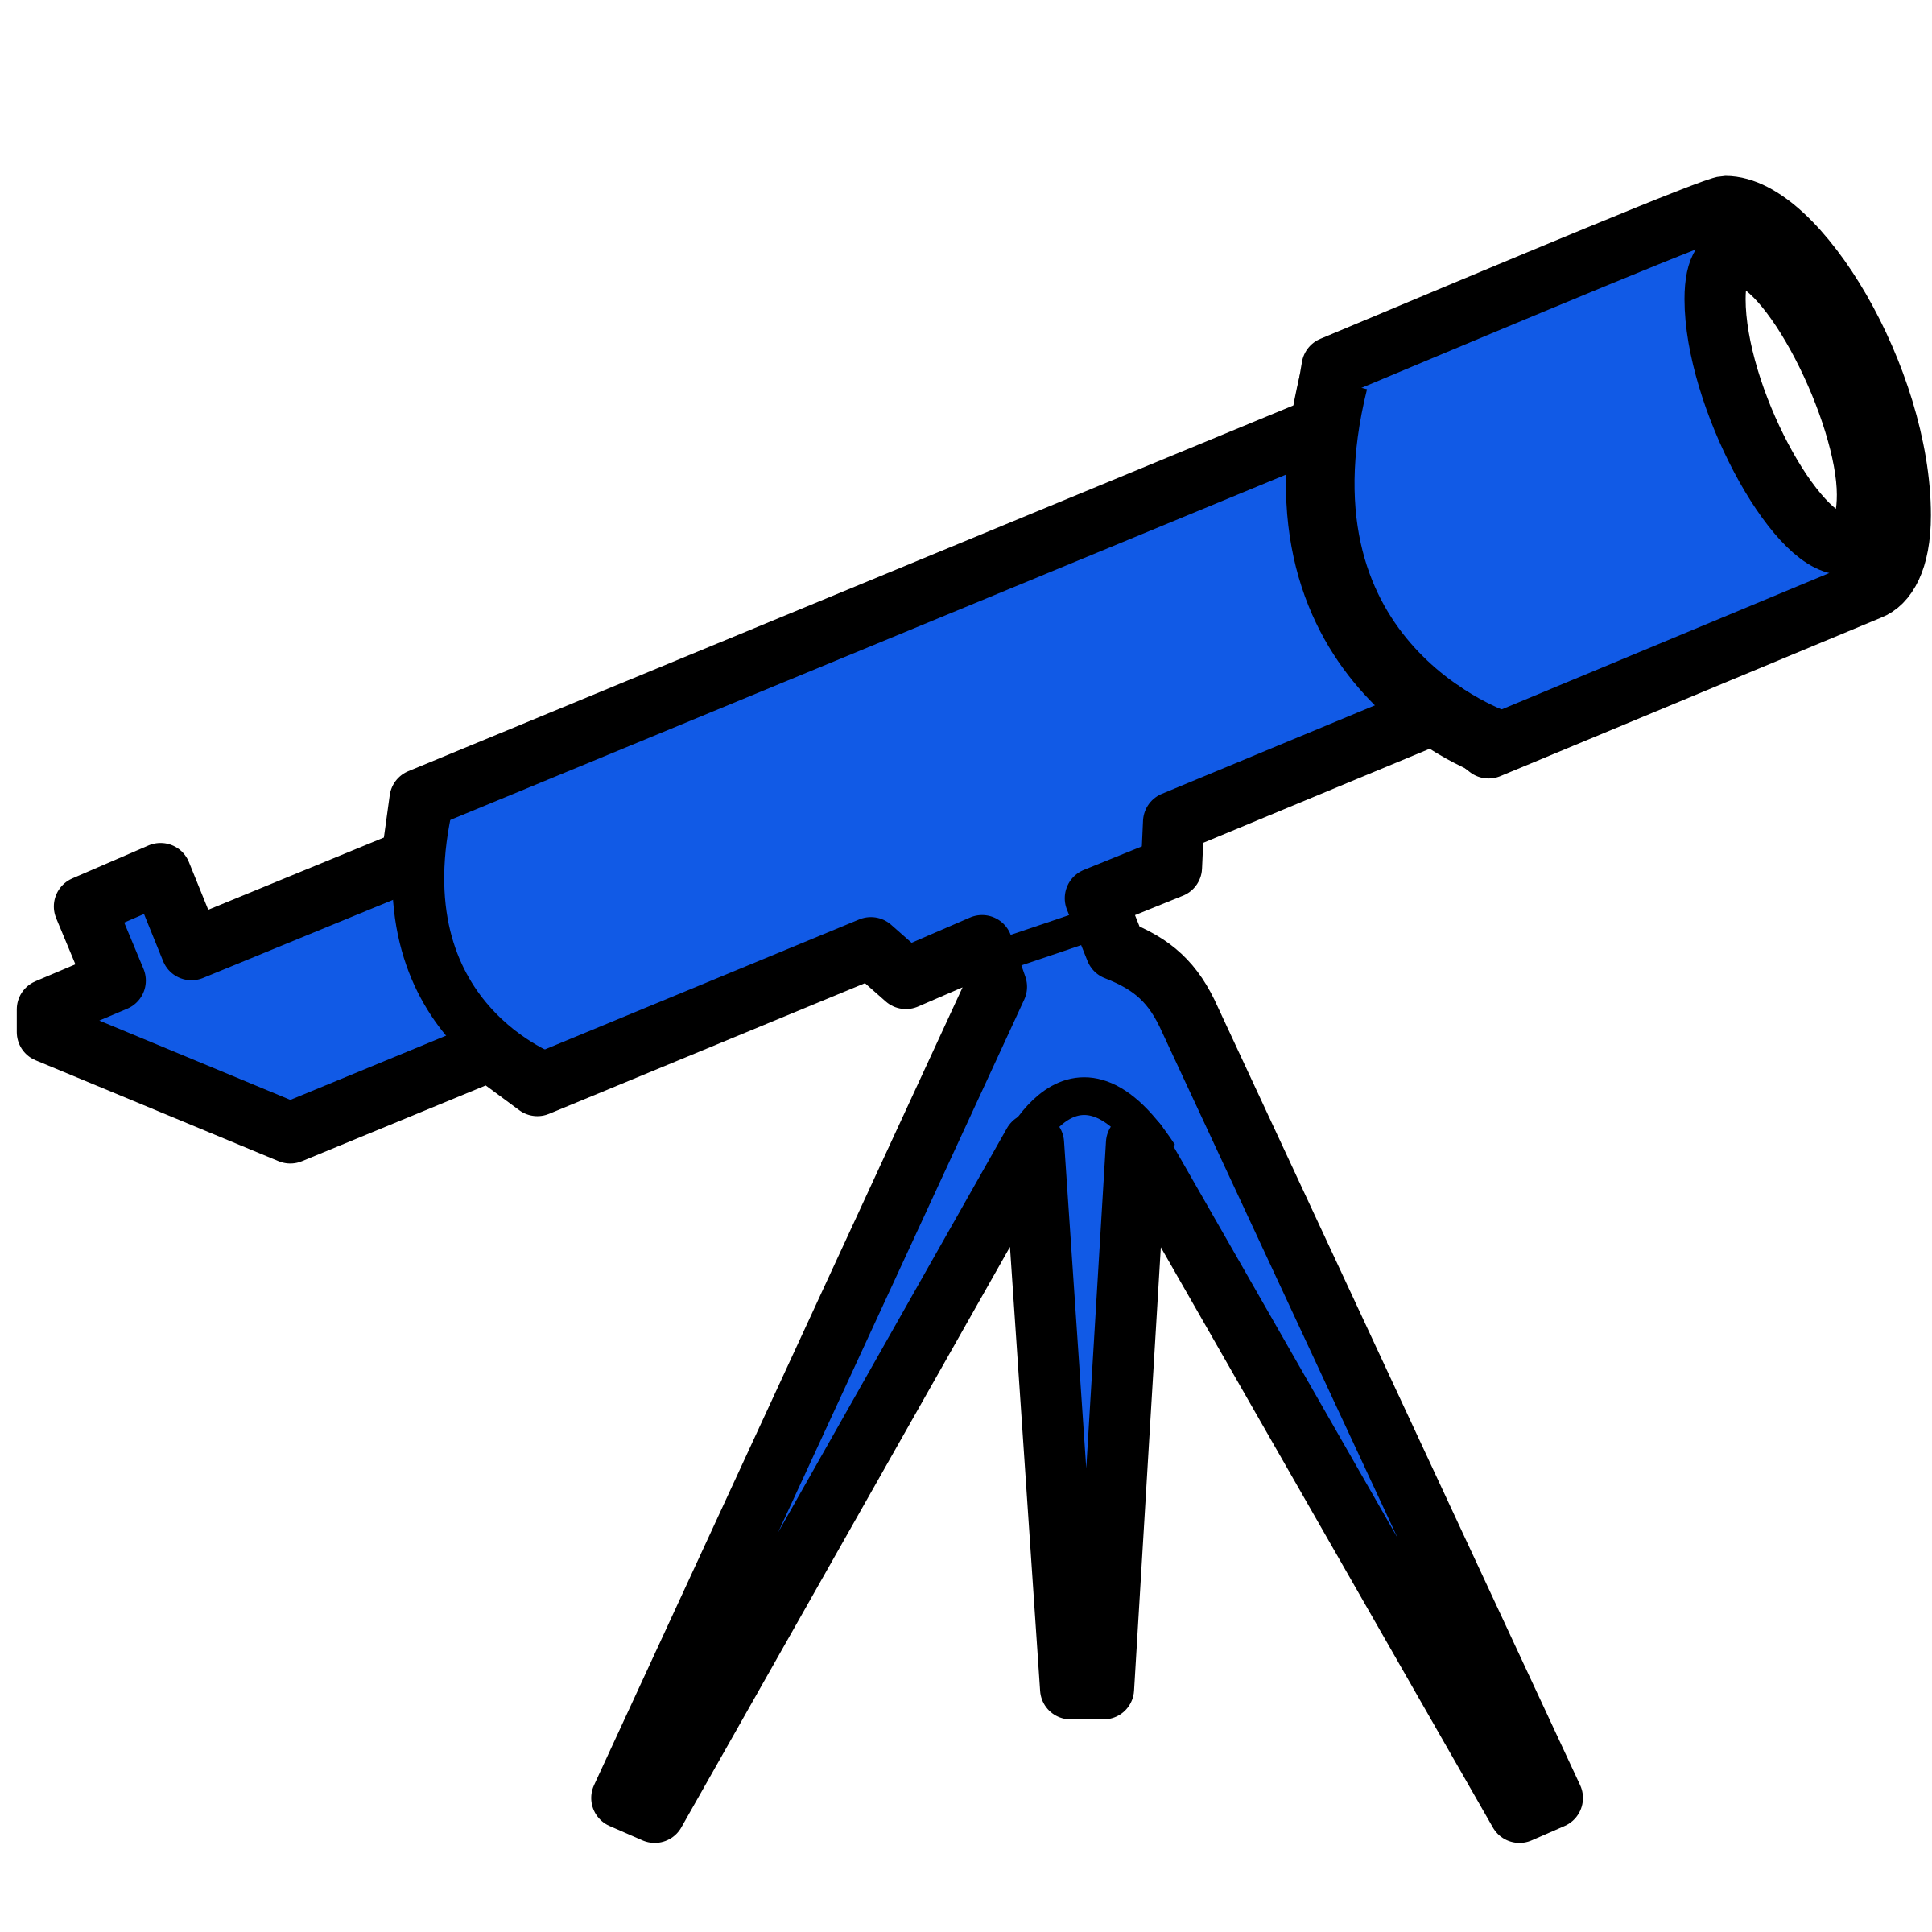 banner free download Telescope clipart. Blue big image png